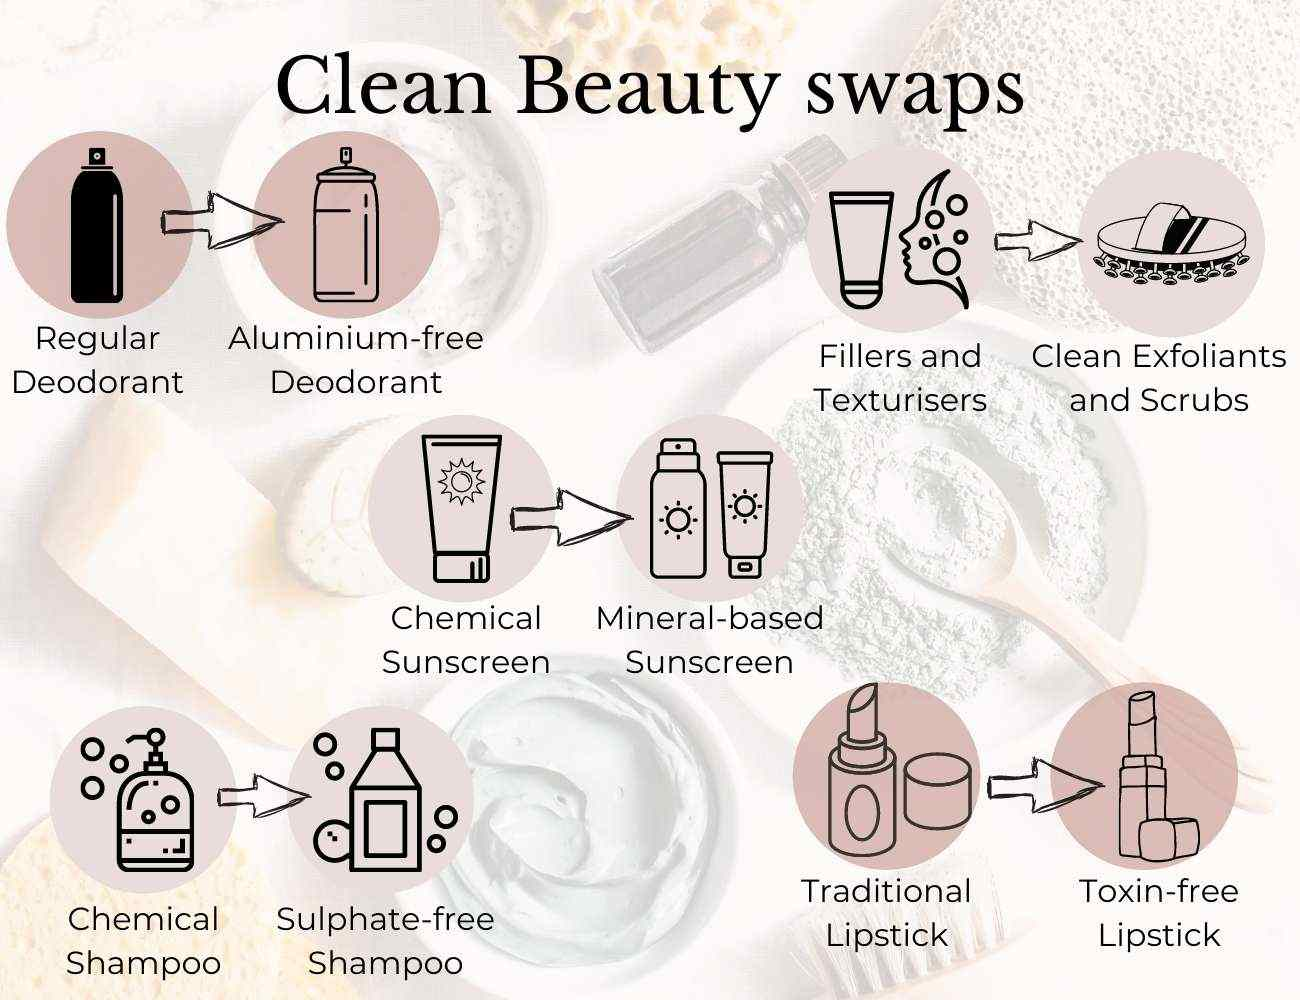 This is an image showing easy 5 basic skincare swaps you can make to switch to Clean Beauty